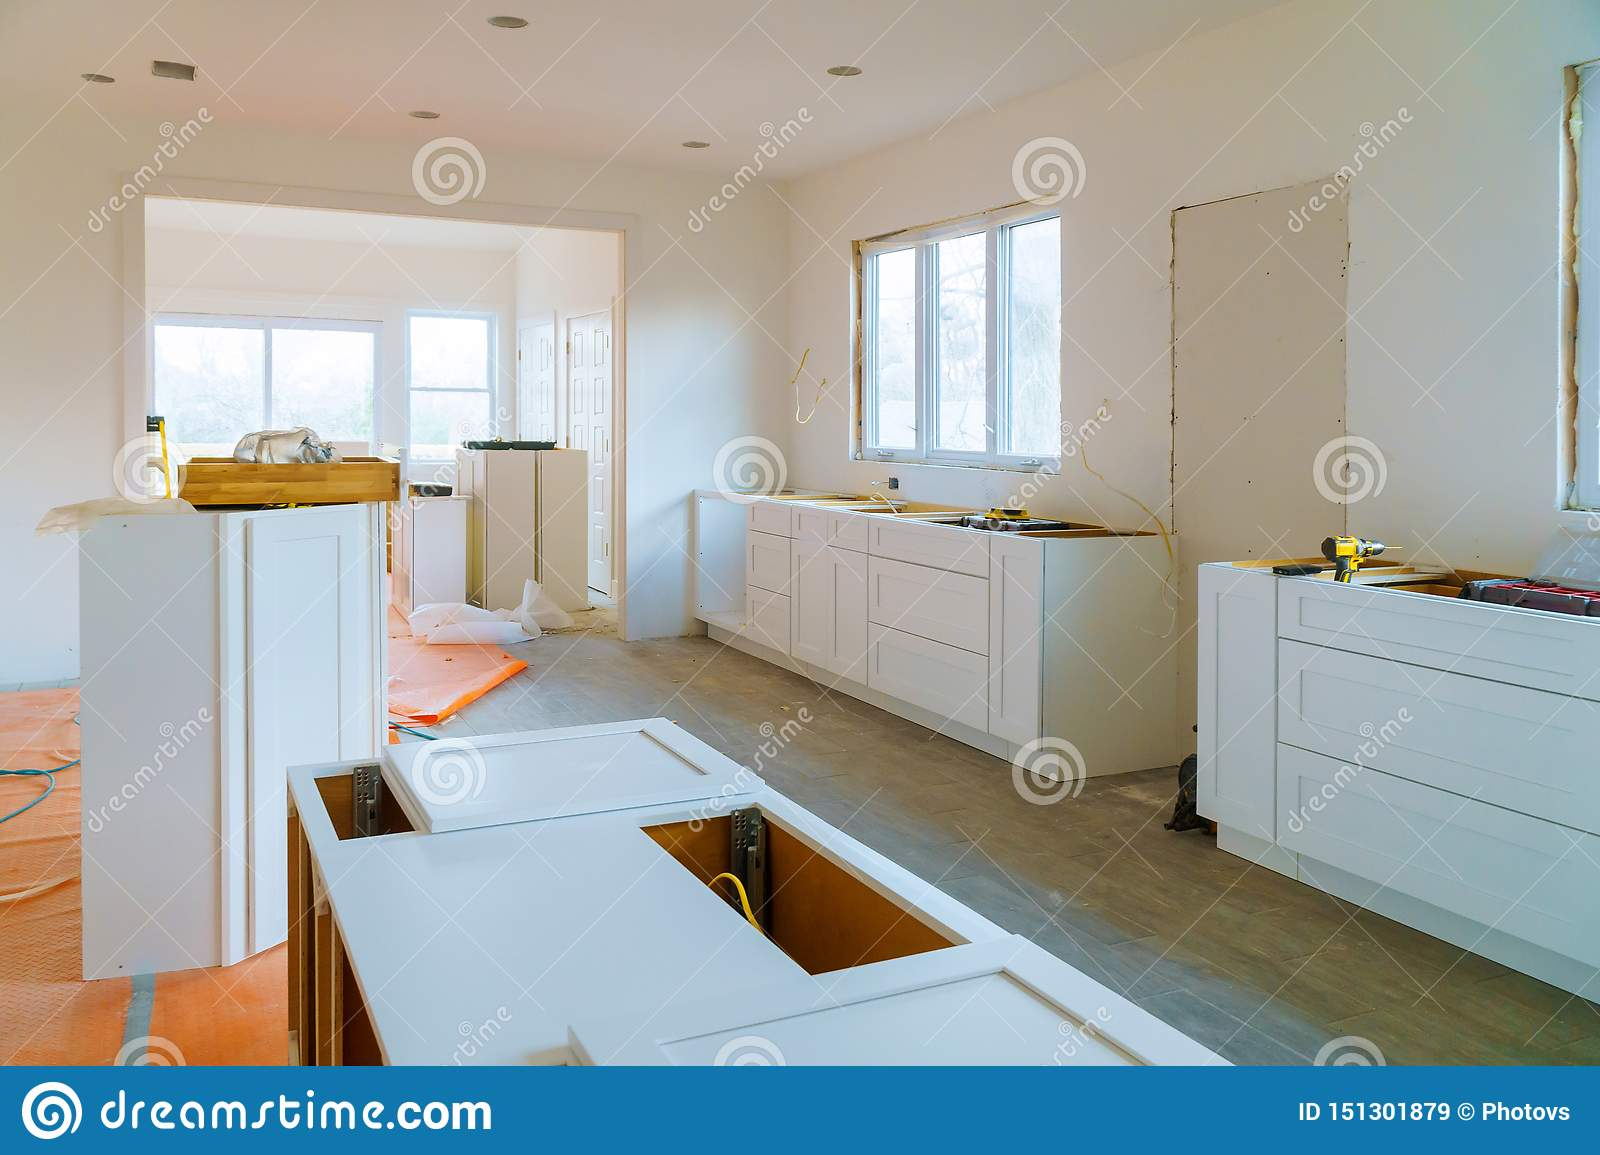 Interior Design Construction Of A Kitchen Drawers Of Kitchen Stock Image Image Of Cabinet Kitchen 151301879